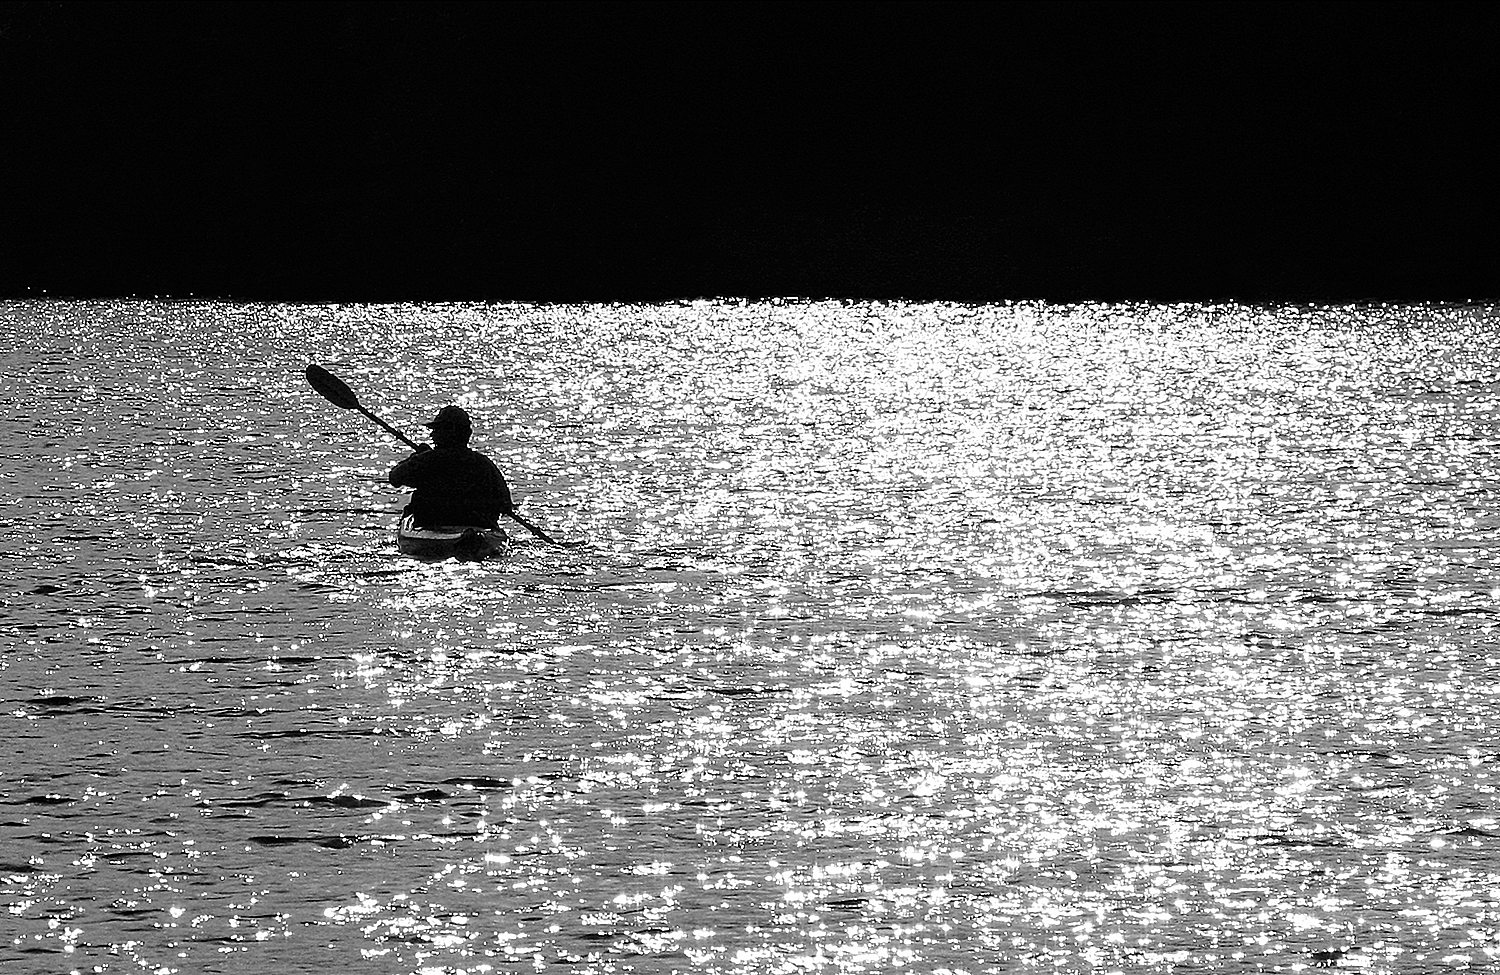 """Late Afternoon Kayak"" - Jury Selection - 2011 Darkroom Gallery"